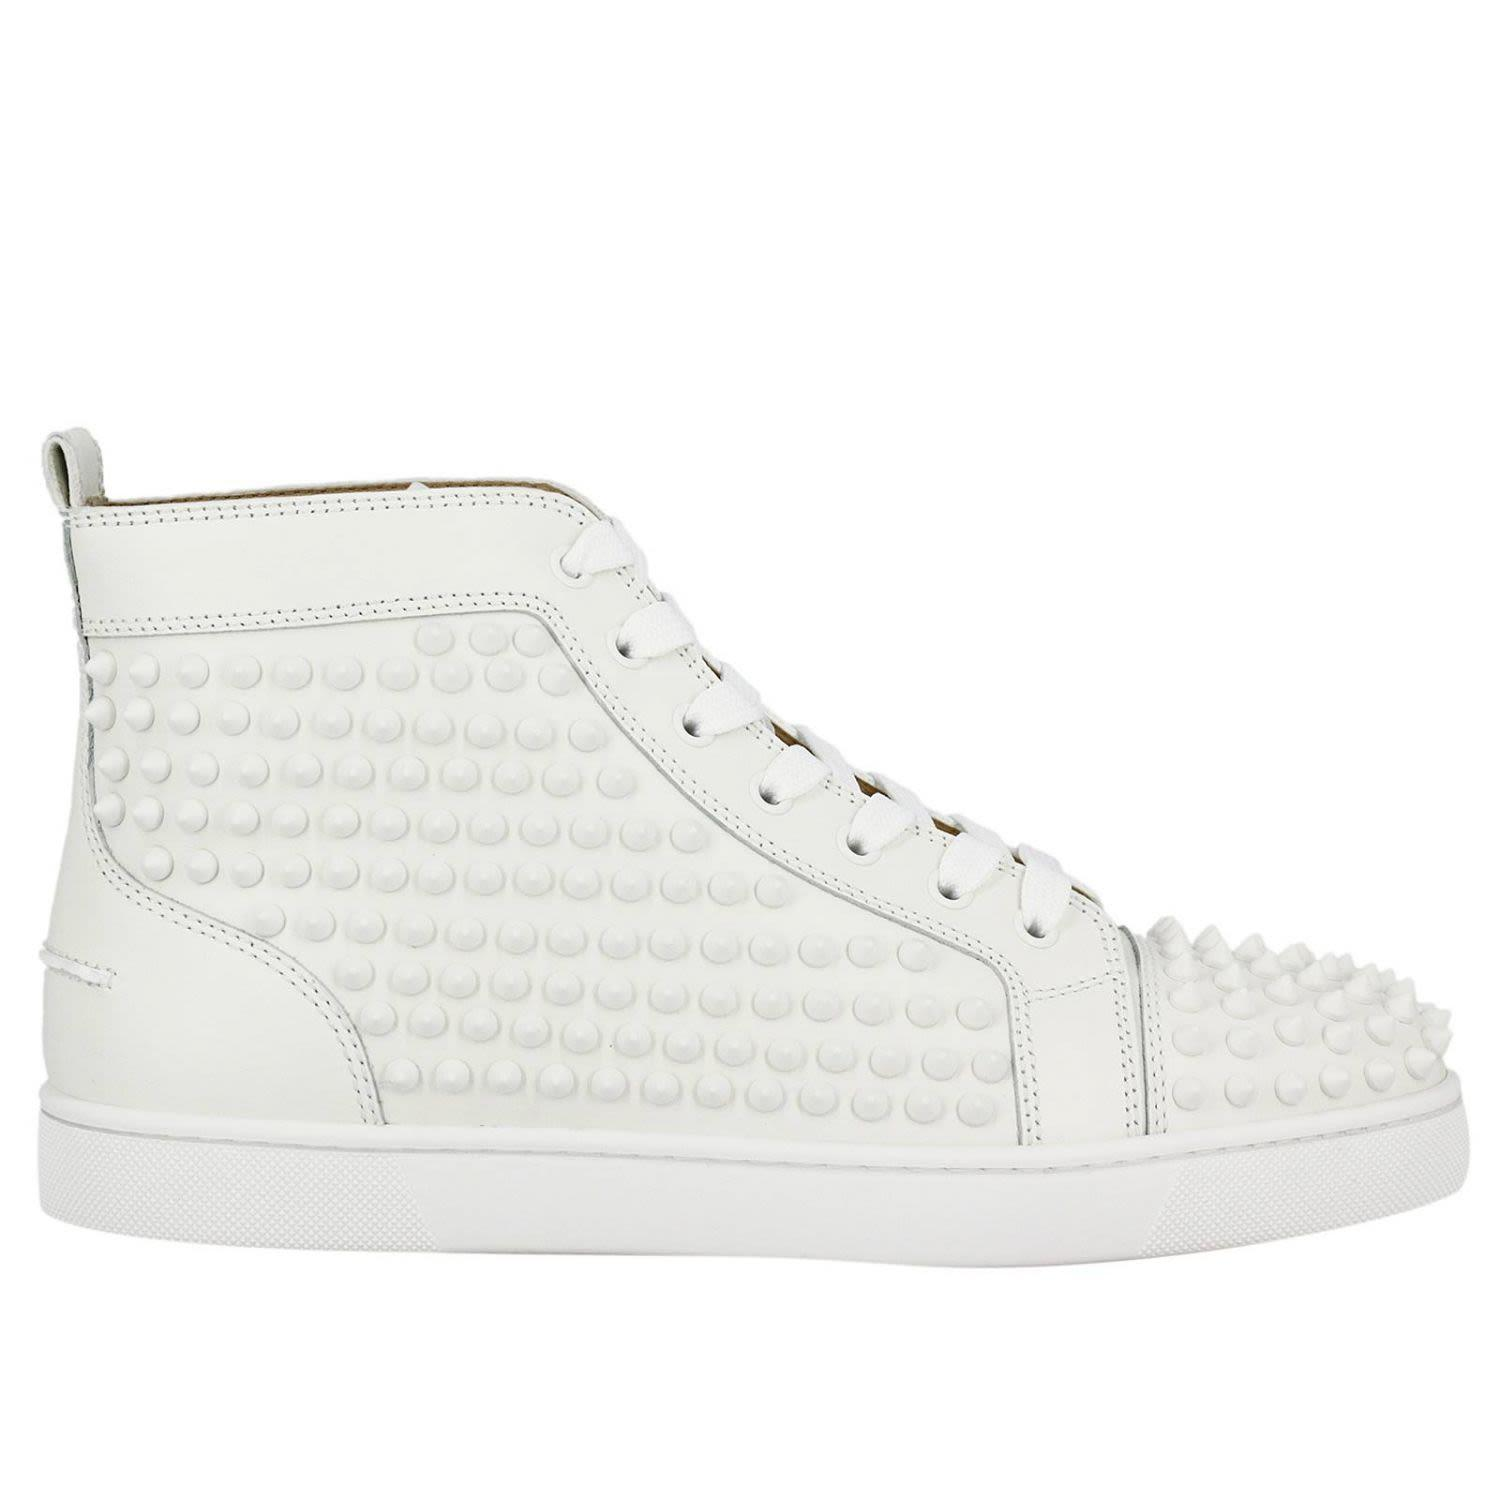 Sneakers Shoes Men Christian Louboutin In White